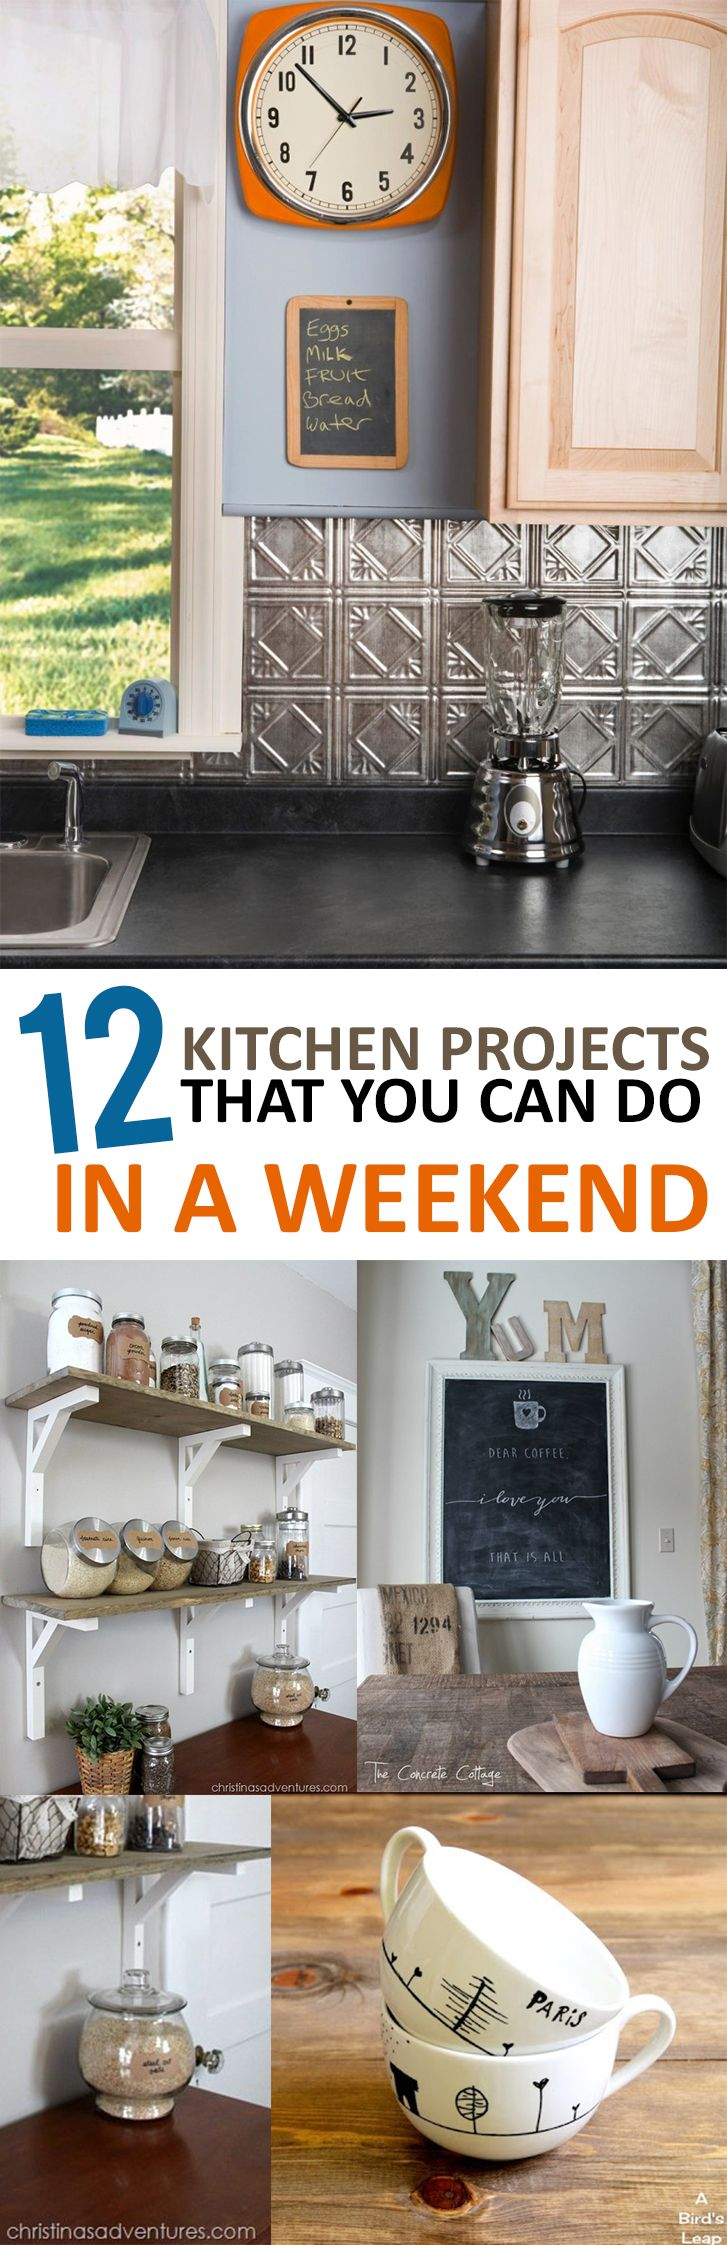 Kitchen projects, DIY kitchen, kitchen remodel, kitchen upgrades, popular pin, easy kitchen, DIY home decor, kitchen organization, DIY organization, DIY kitchen.